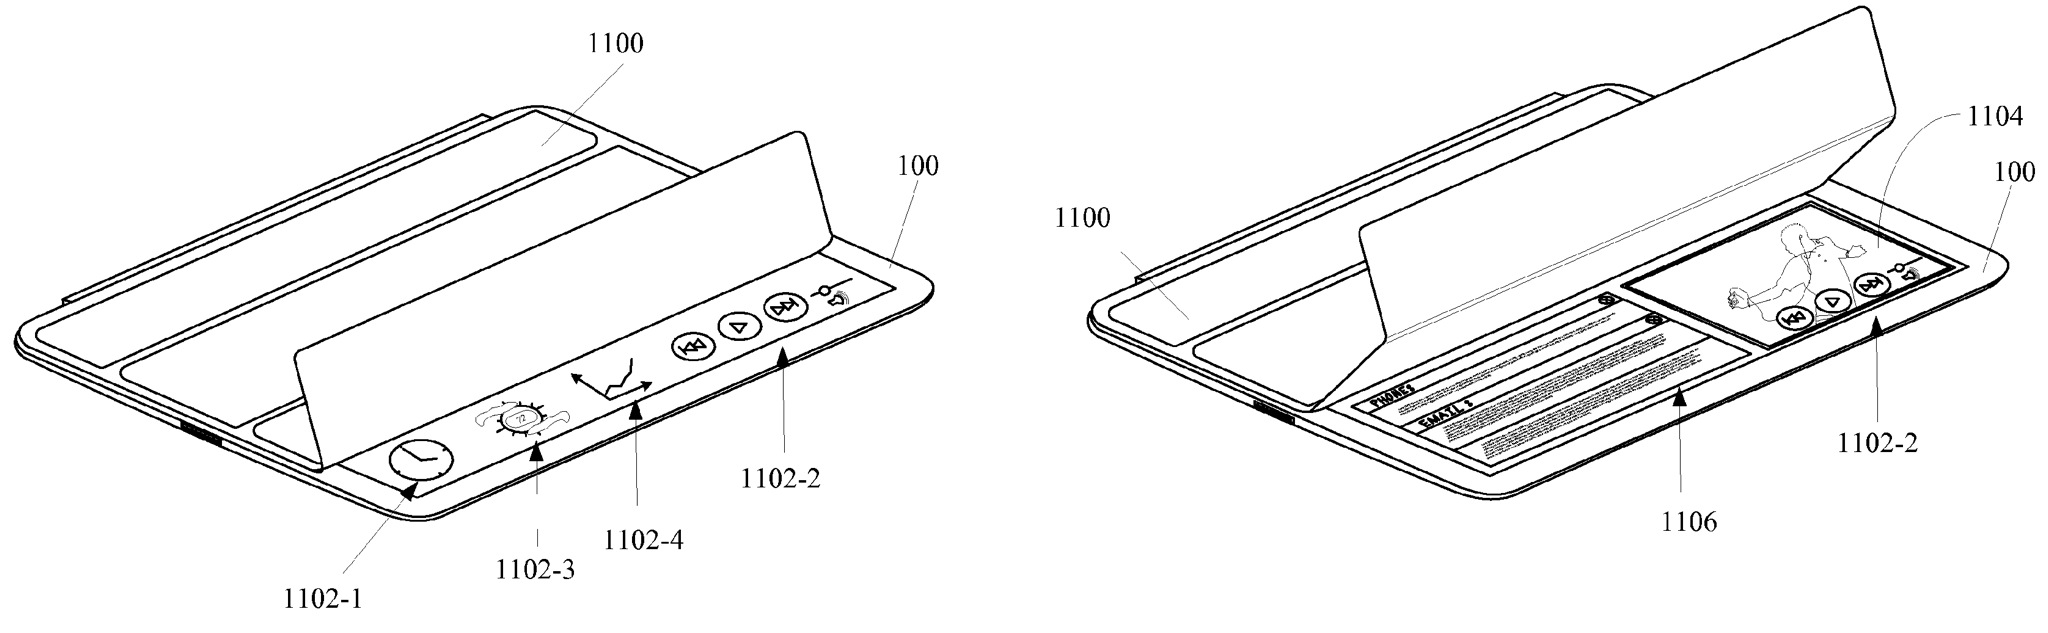 Apple seethrough Smart Cover patent (drawing 001)